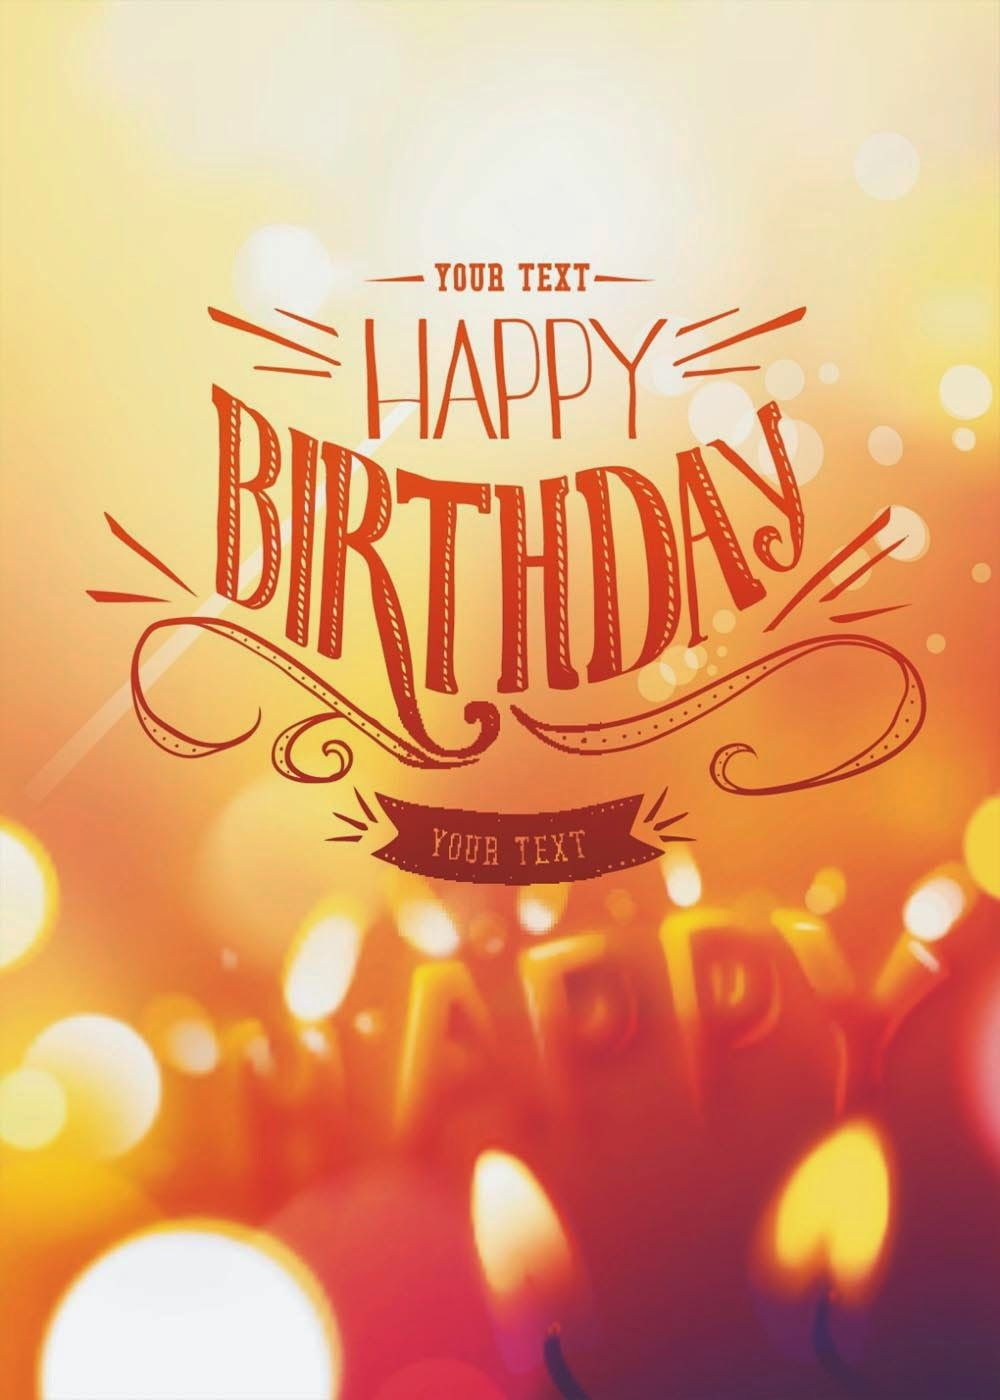 Happy Birthday Greetings Cards Sms Wishes Poetry Birthday Cards